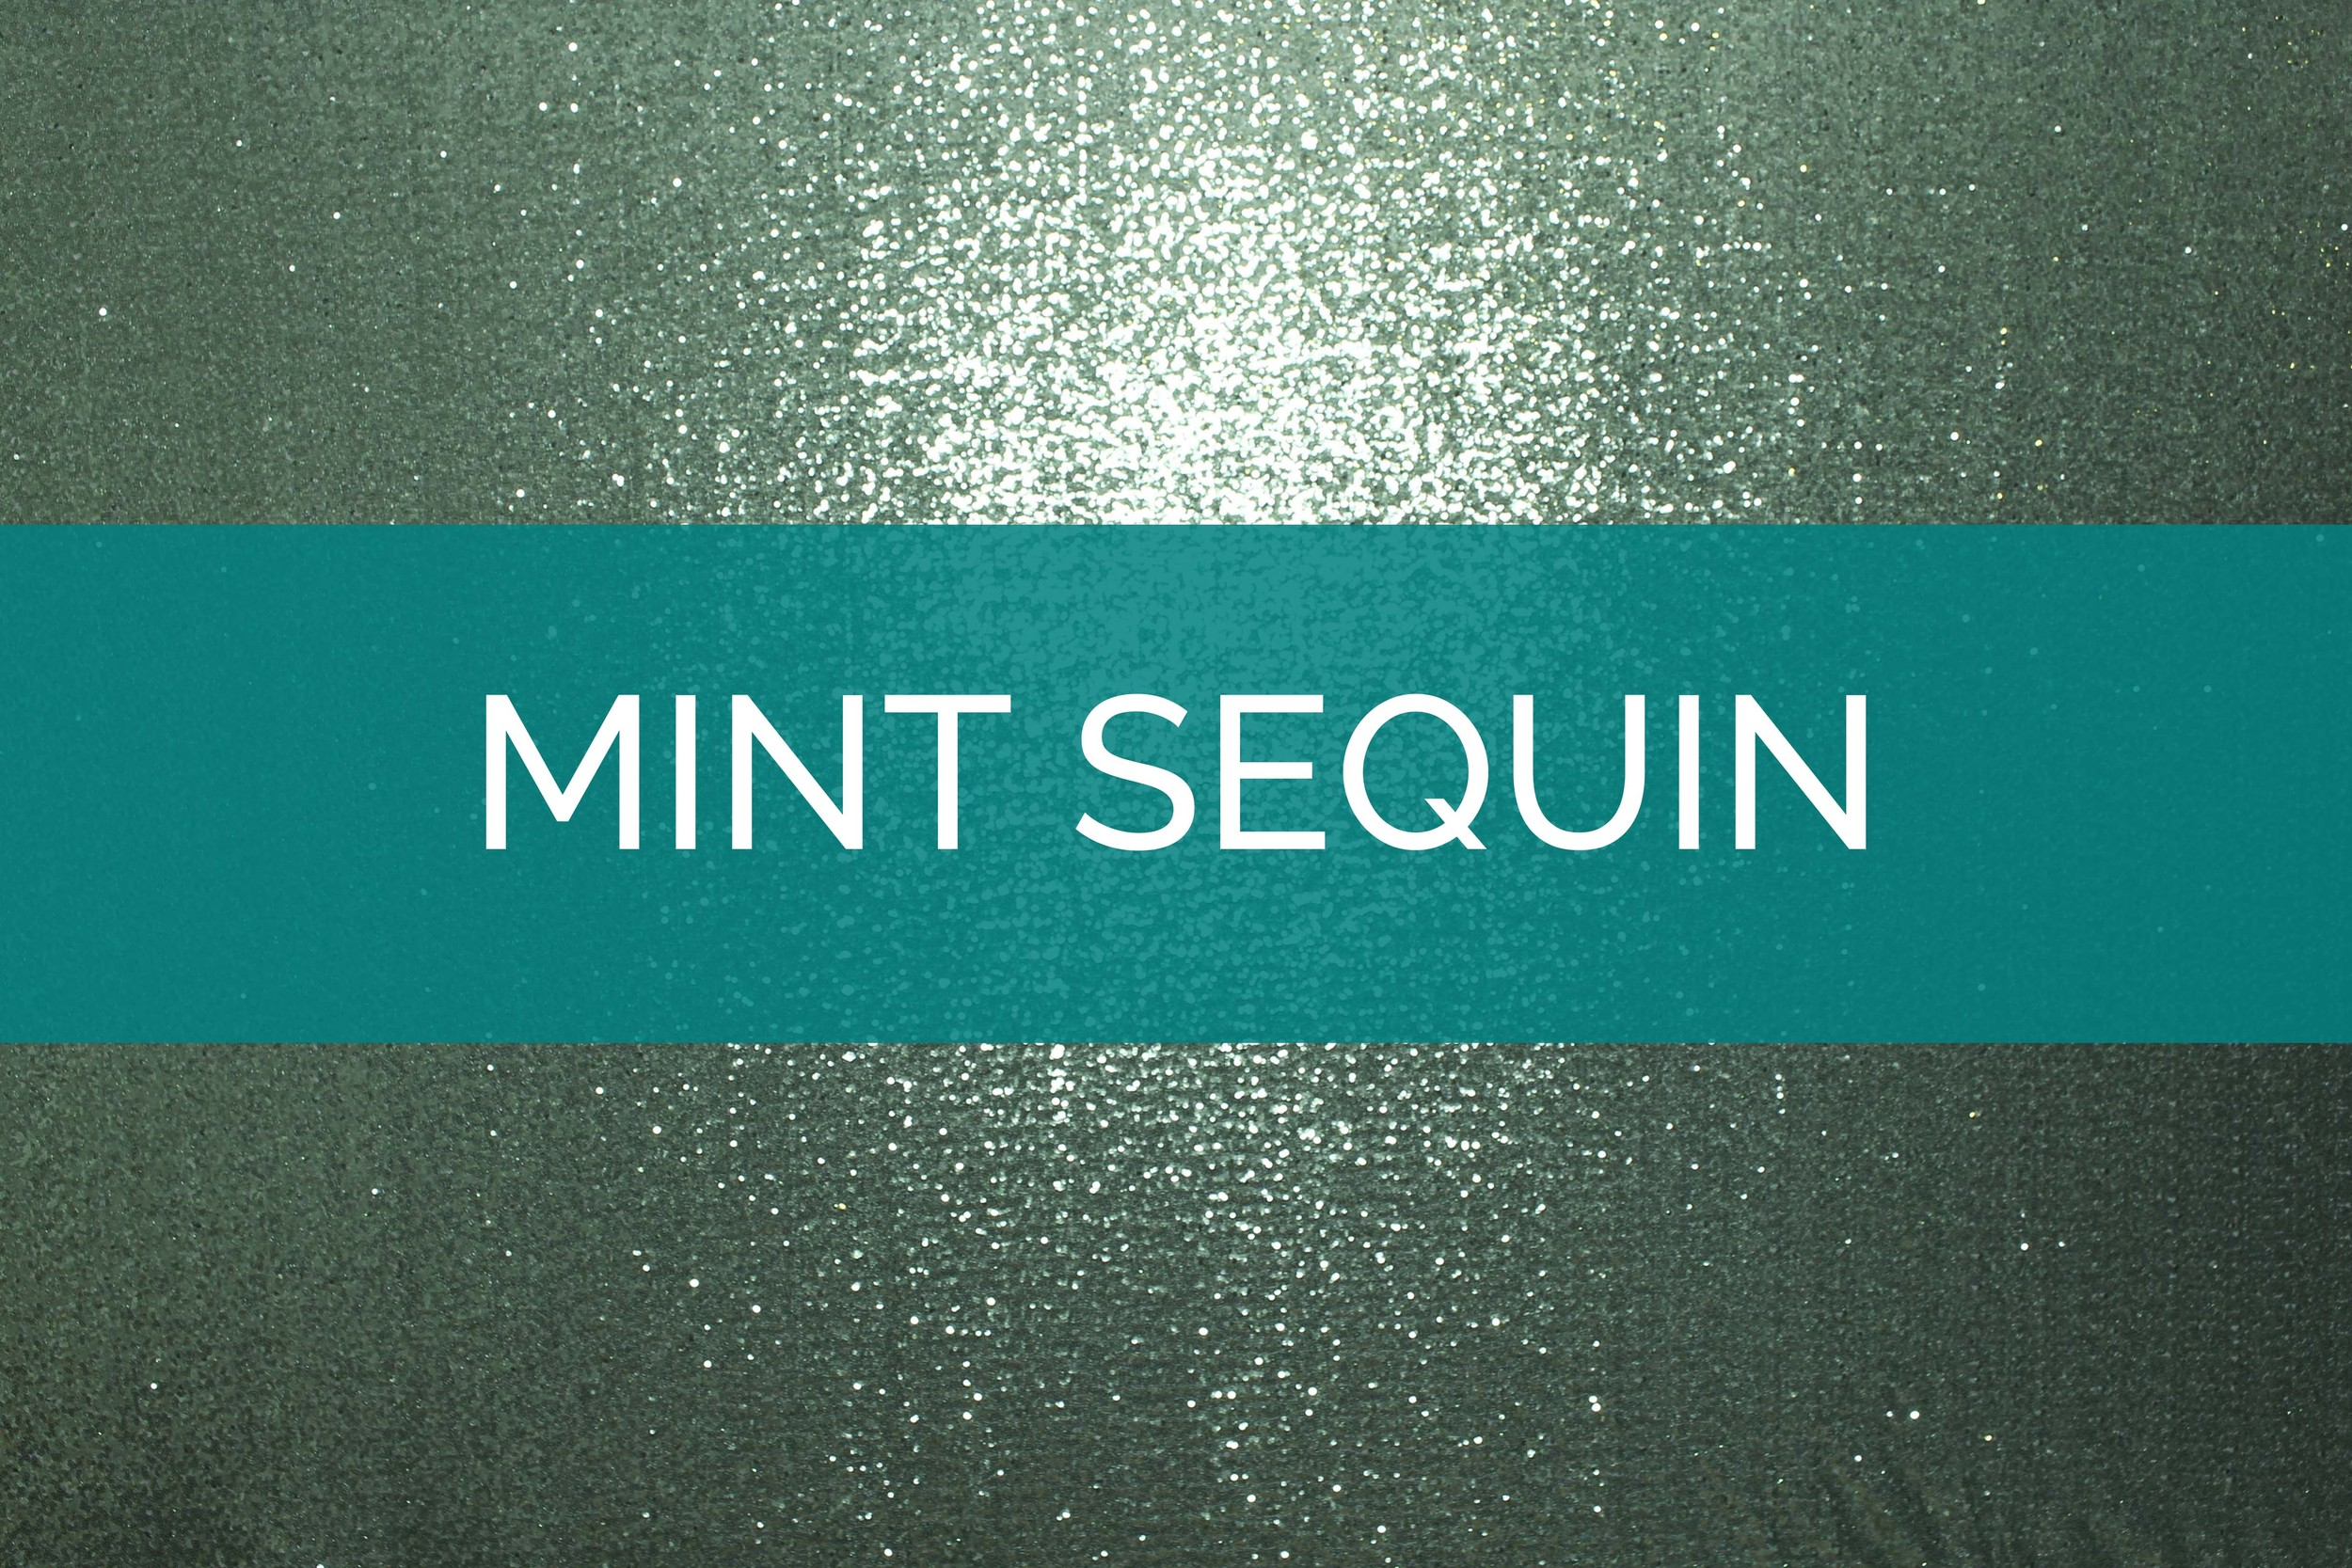 Mint_Sequin.jpg